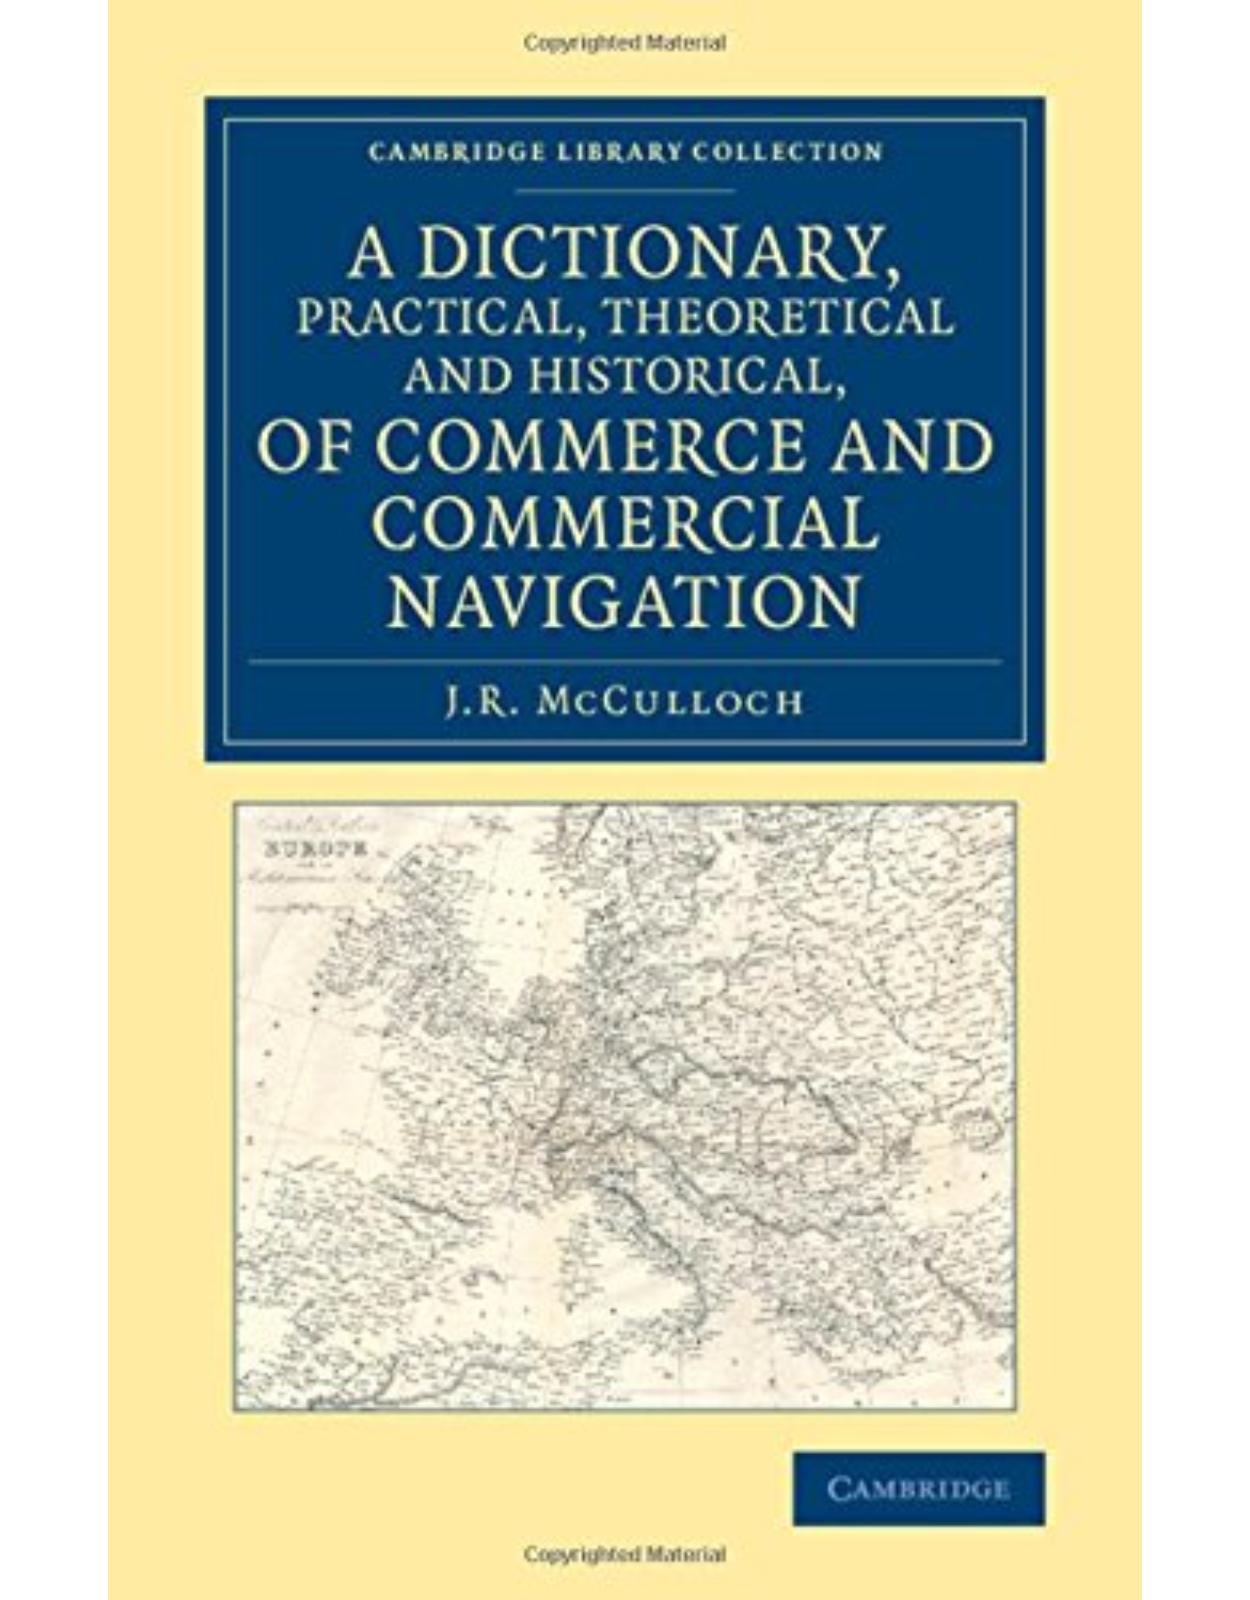 A Dictionary, Practical, Theoretical and Historical, of Commerce and Commercial Navigation (Cambridge Library Collection - British and Irish History, 19th Century)